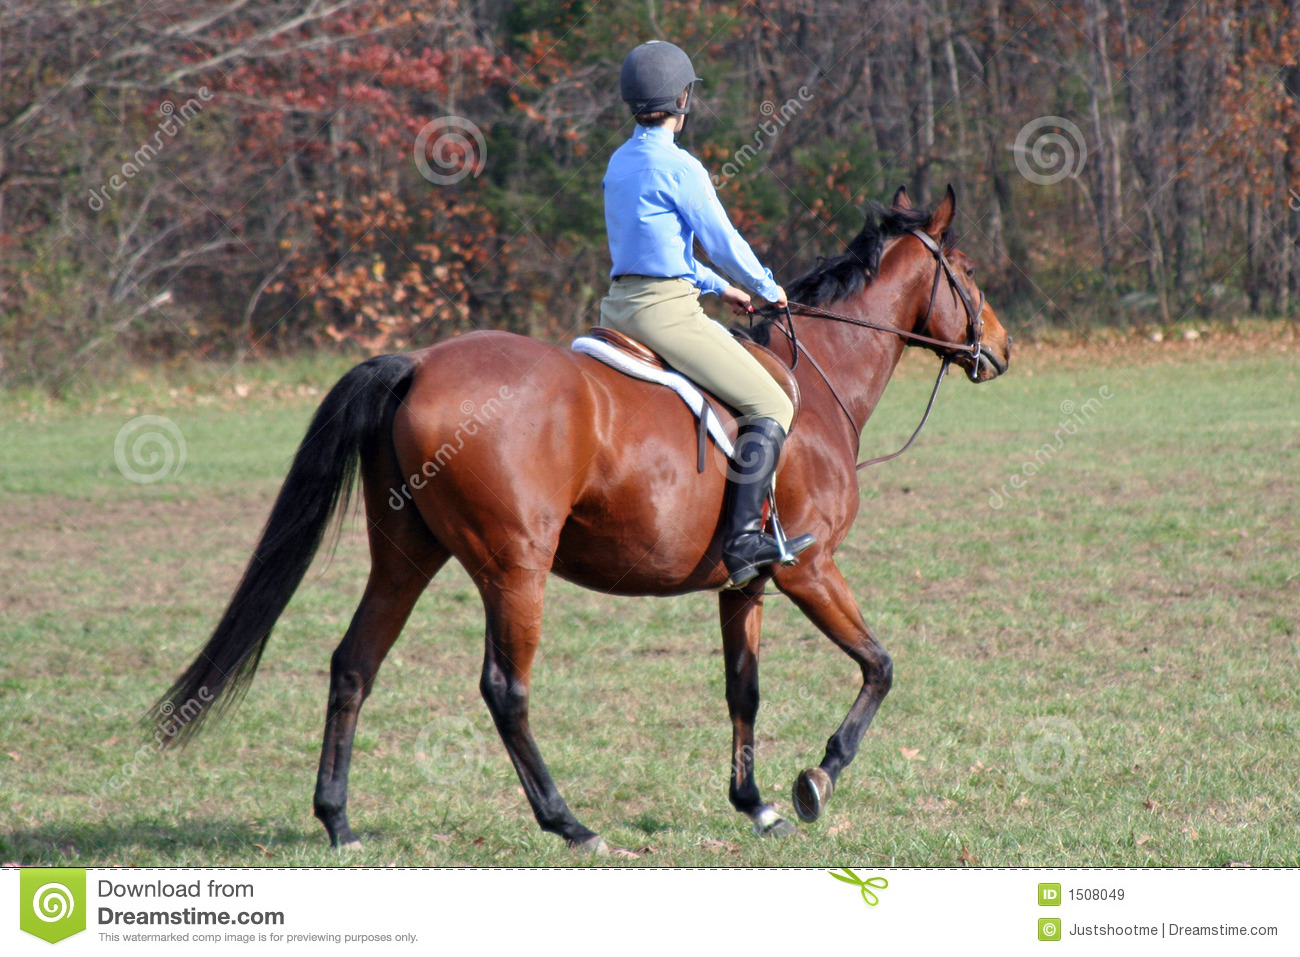 Horse Rider Stock Image Image Of Autumn Fall Ride